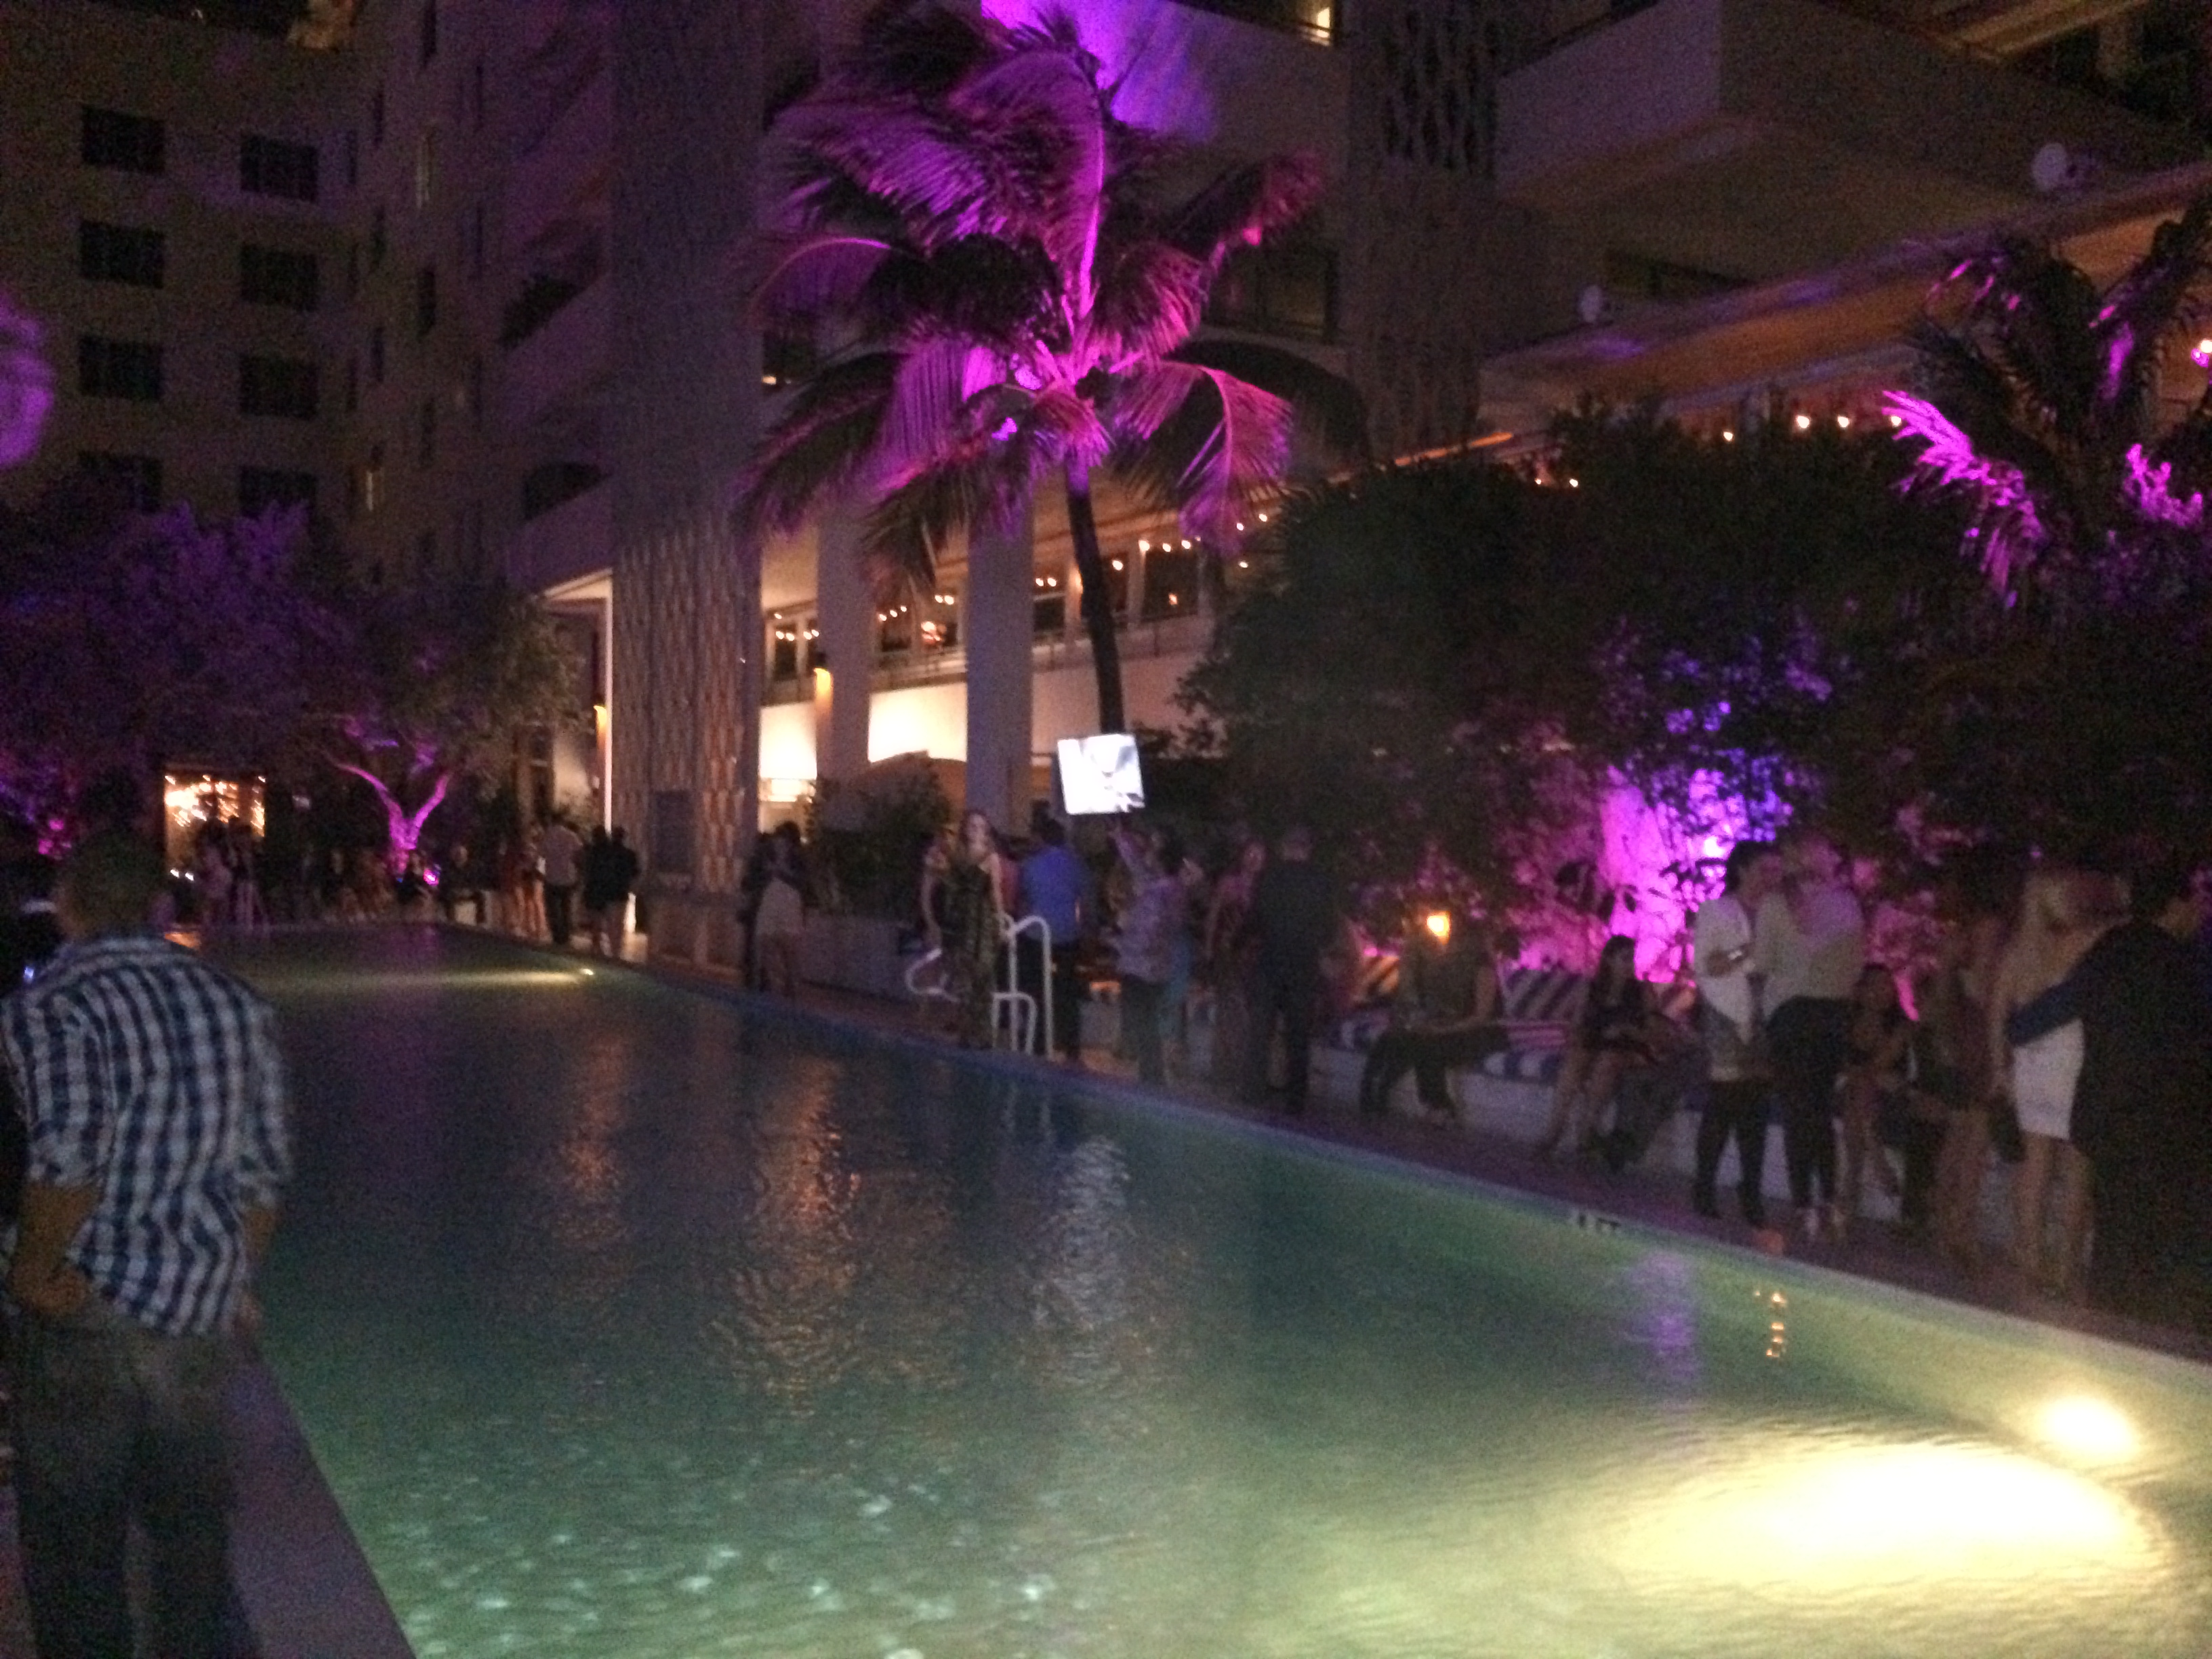 Soho House Miami Beach Pool Side Night Published 2013 12 29 At 3264 X 2448